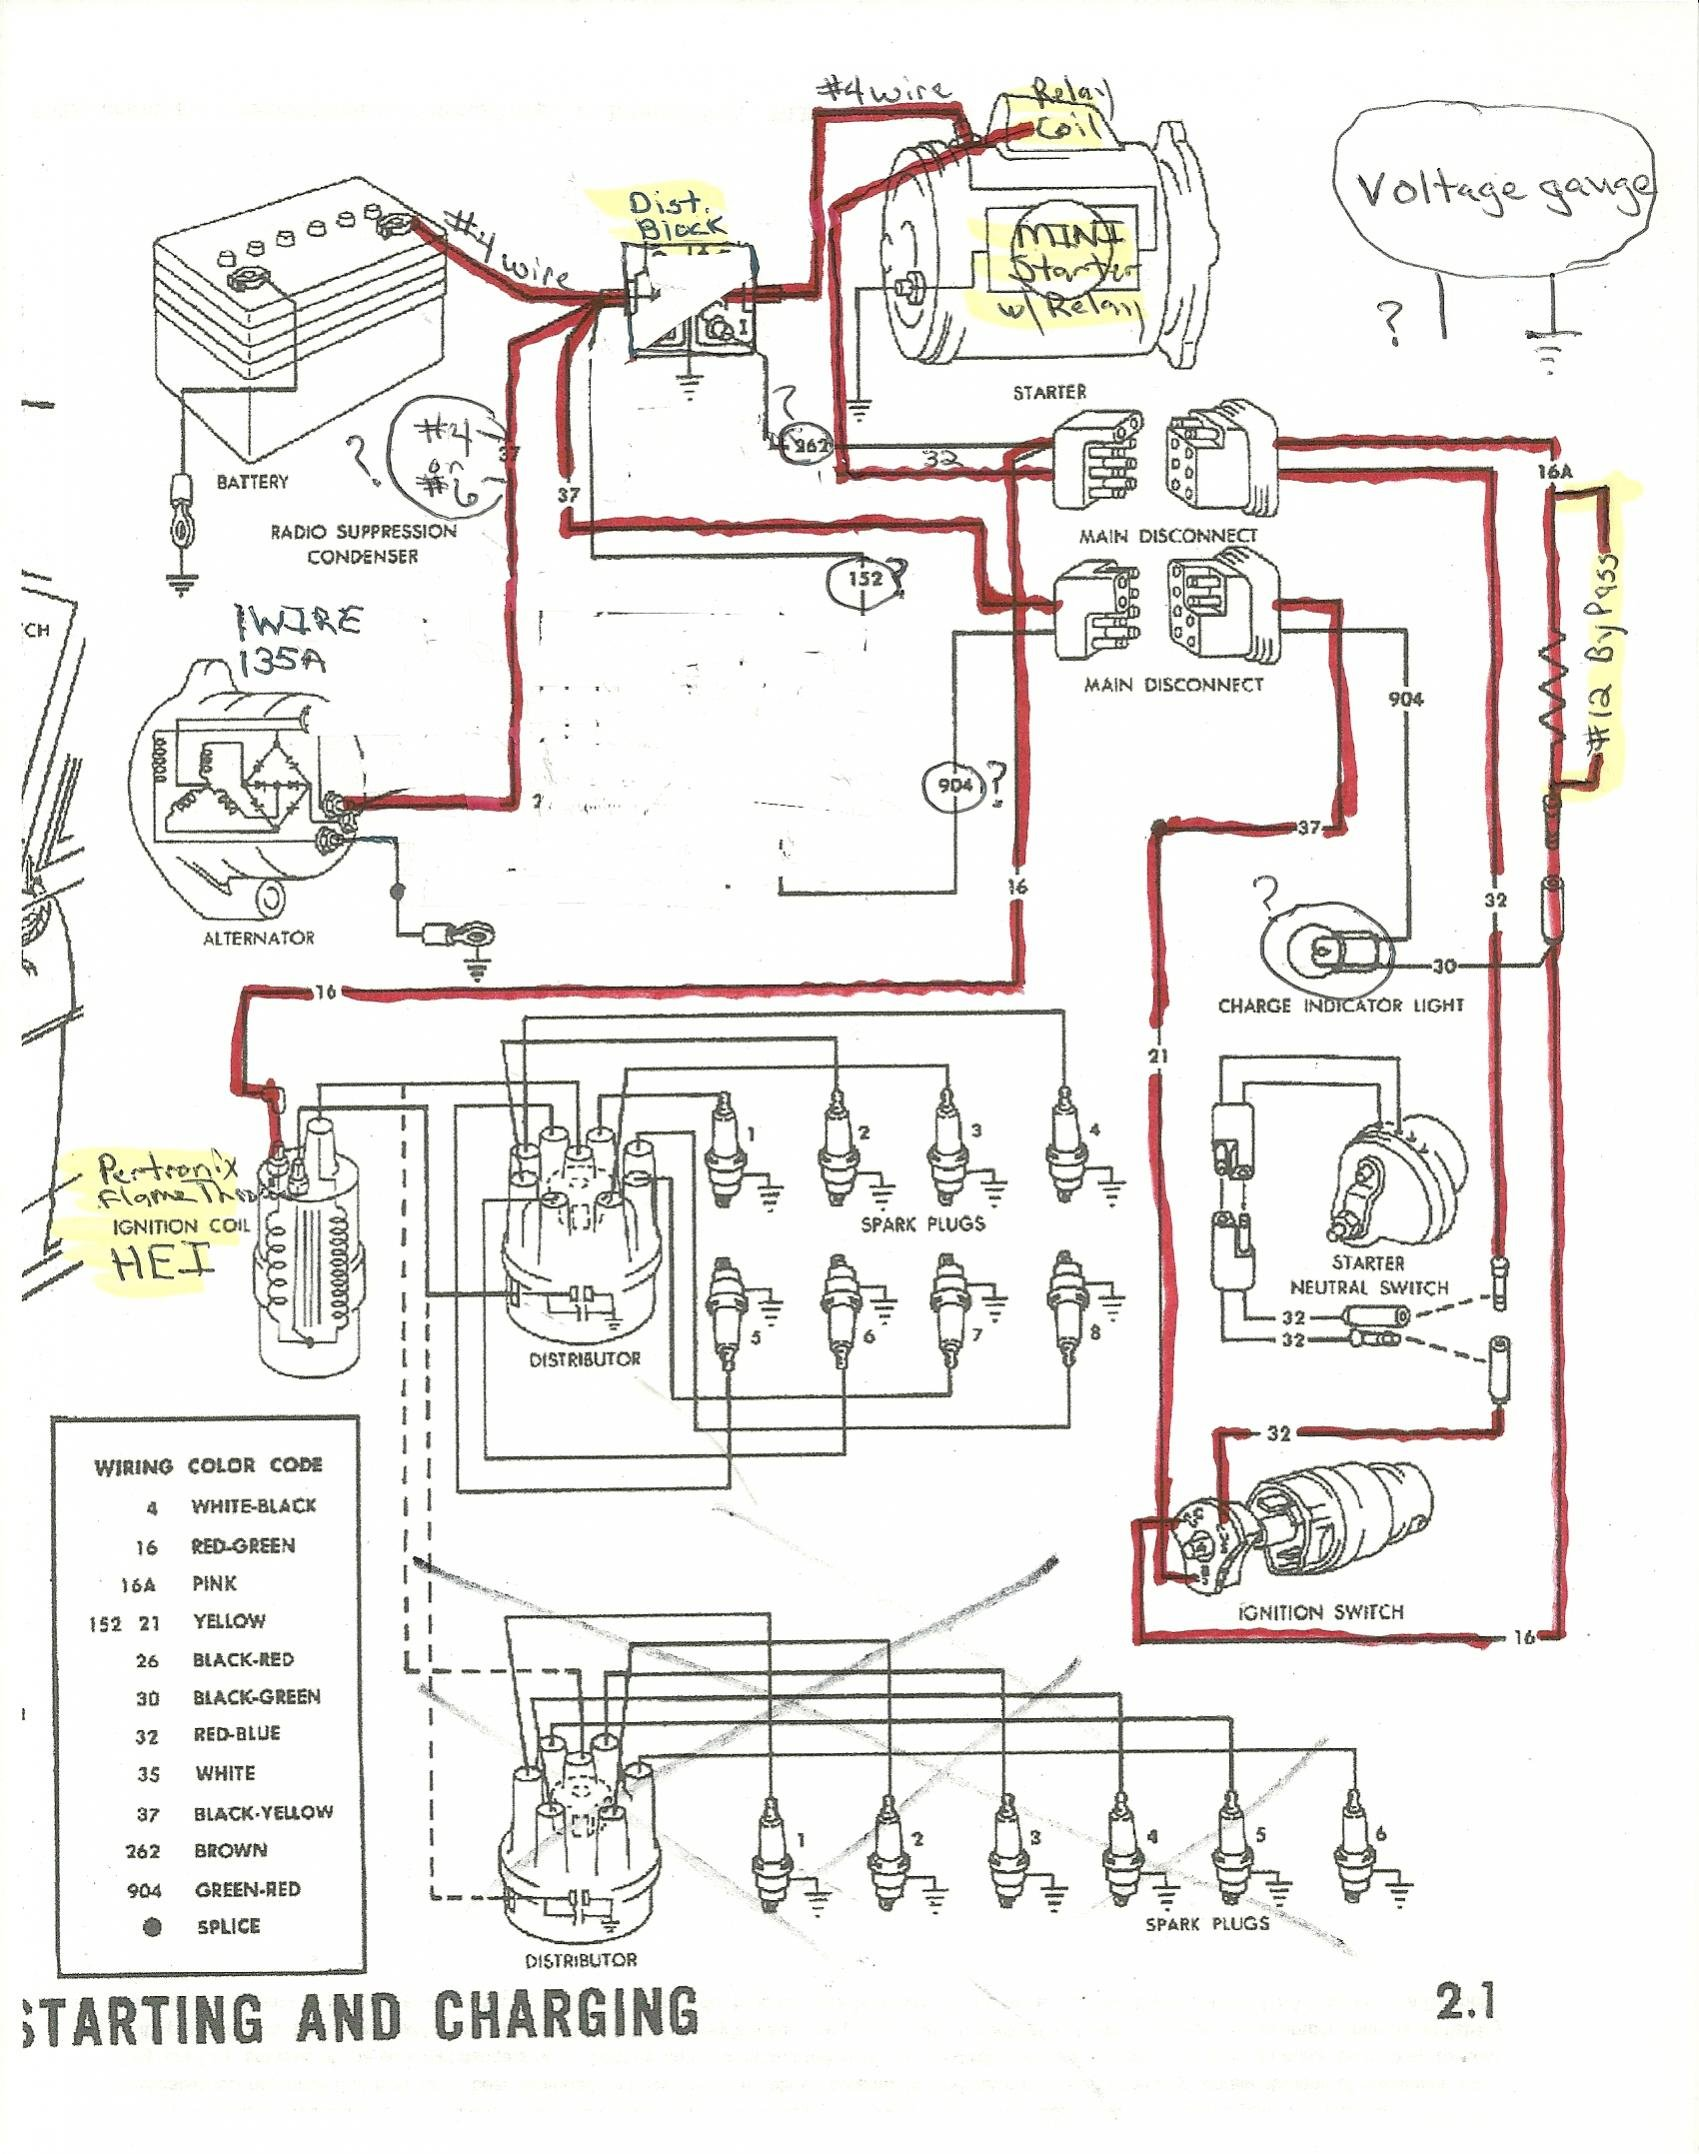 hight resolution of 65 ford mustang alternator wiring diagram wiring diagram 1967 ford mustang alternator wiring diagram 1965 ford